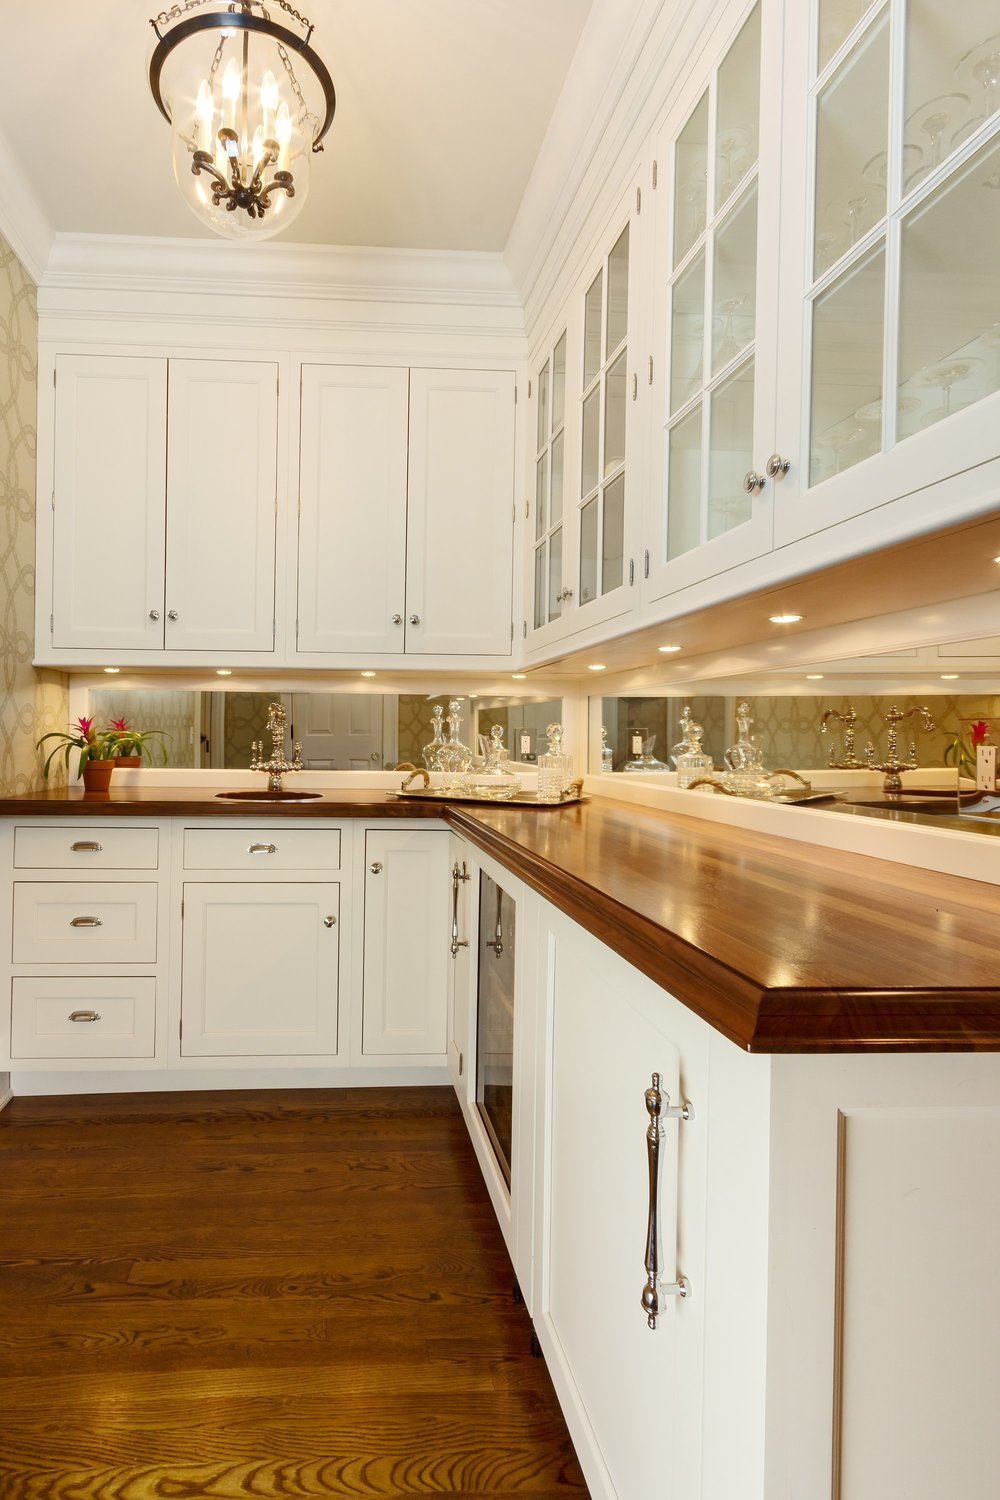 Transitional style kitchen with L'shaped counter